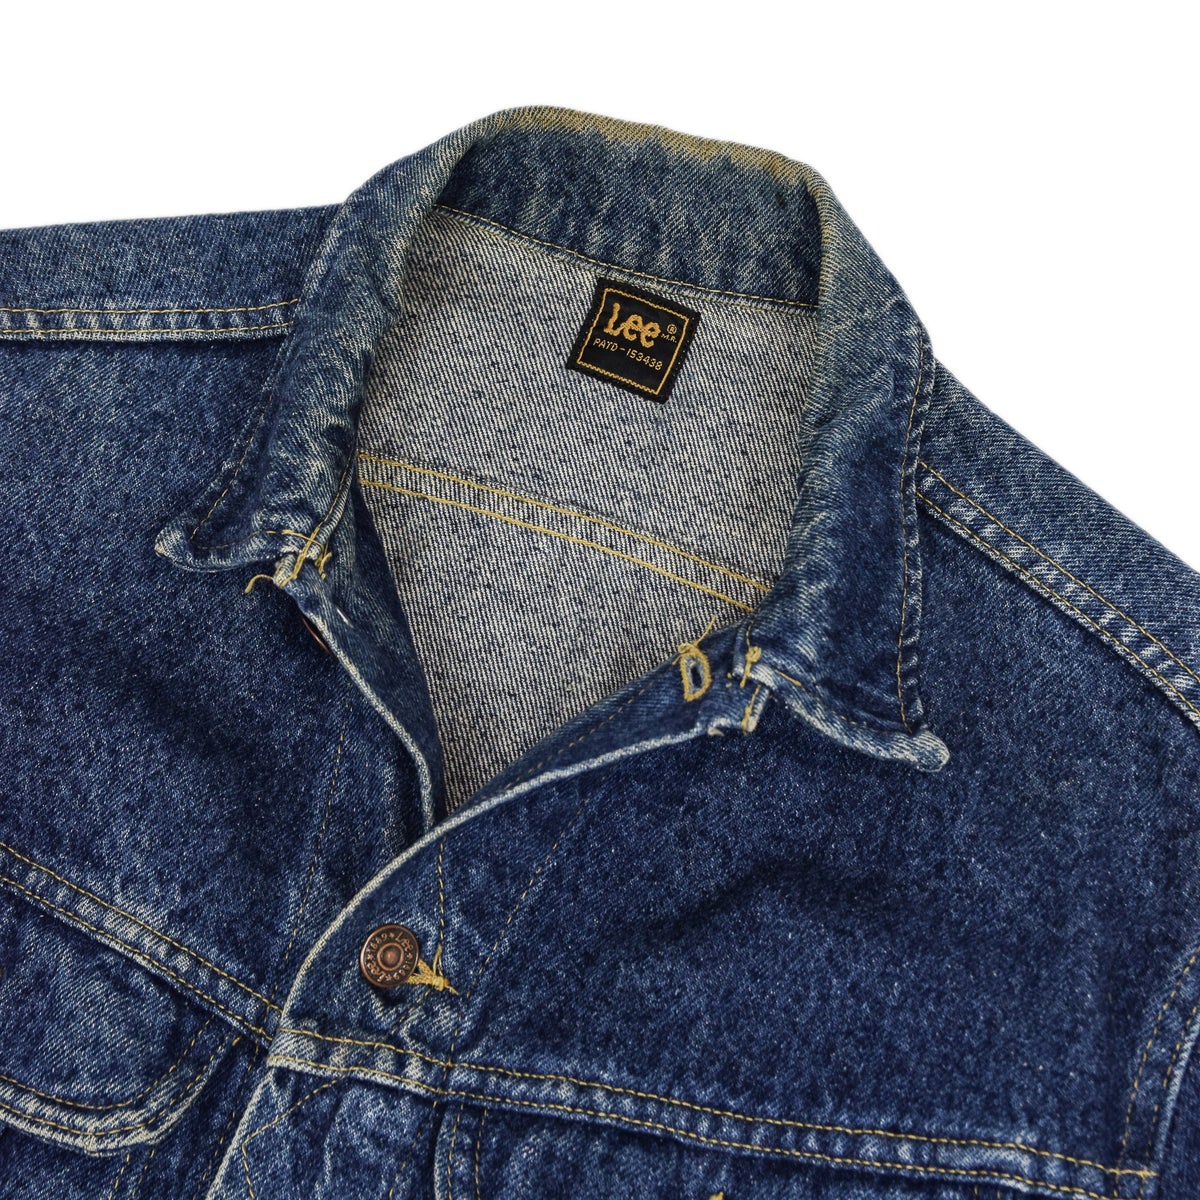 Vintage 70s Lee Washed Blue Denim Trucker Style Basic Jacket Made in USA M collar